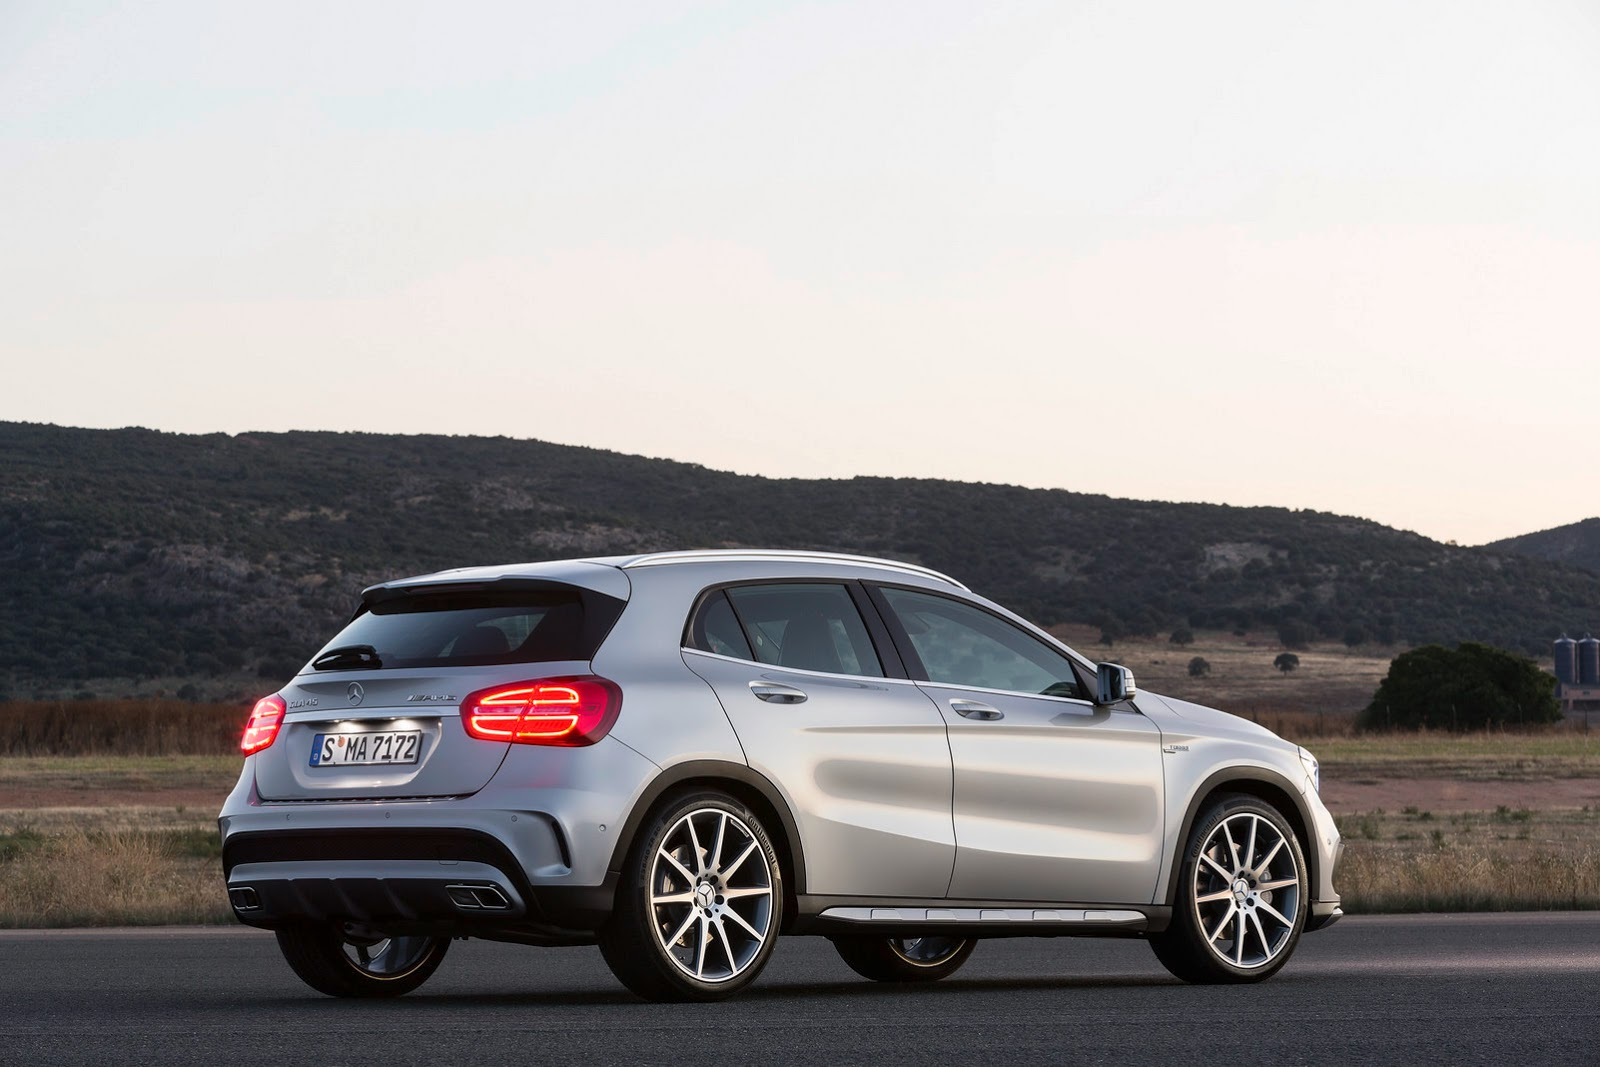 new 2015 mercedes gla compact suv from 31 300 in the u s carscoops. Black Bedroom Furniture Sets. Home Design Ideas